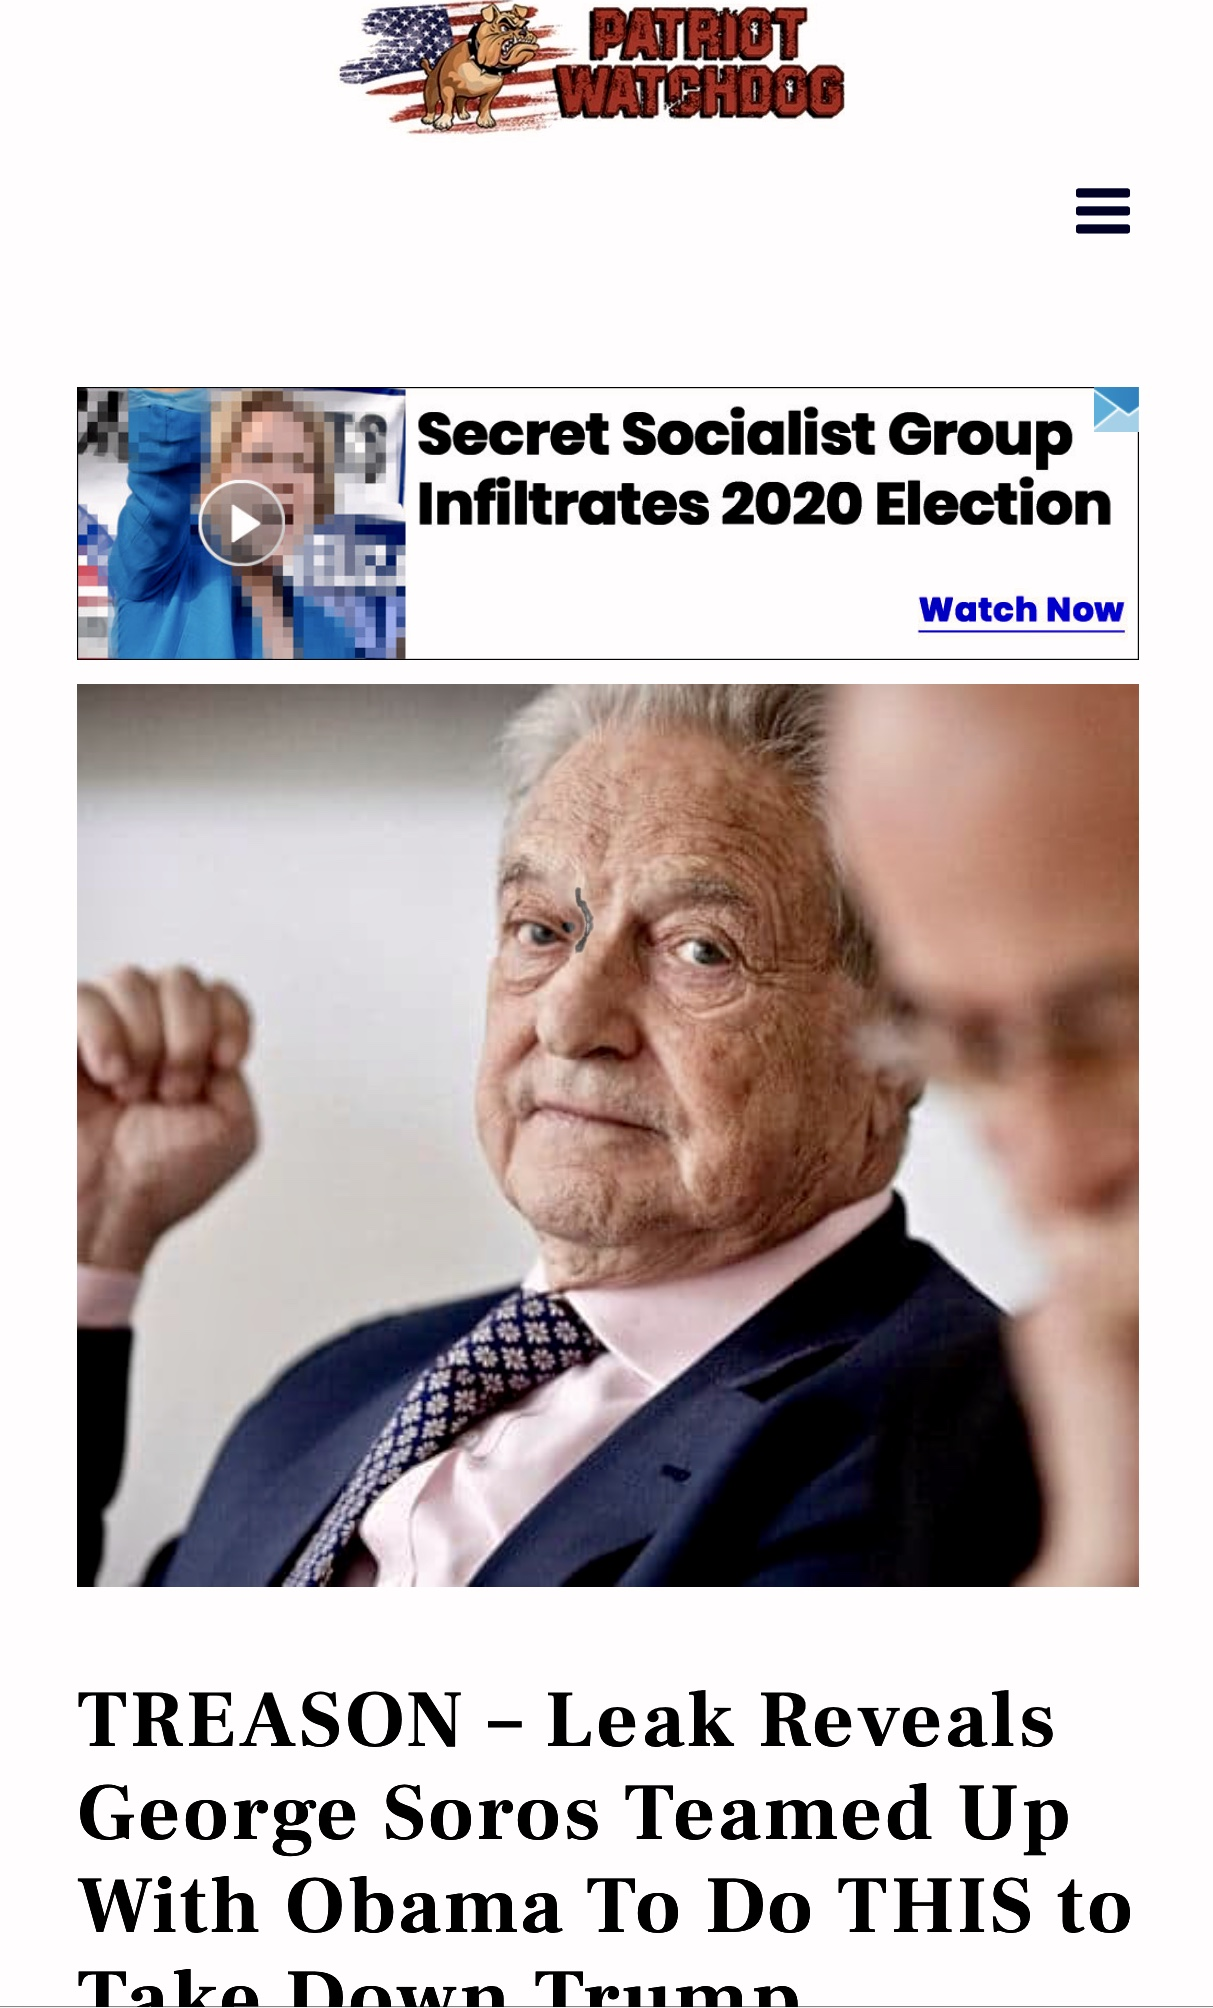 TREASON – Leak Reveals Soros Teamed Up With Obama To Take Down Trump